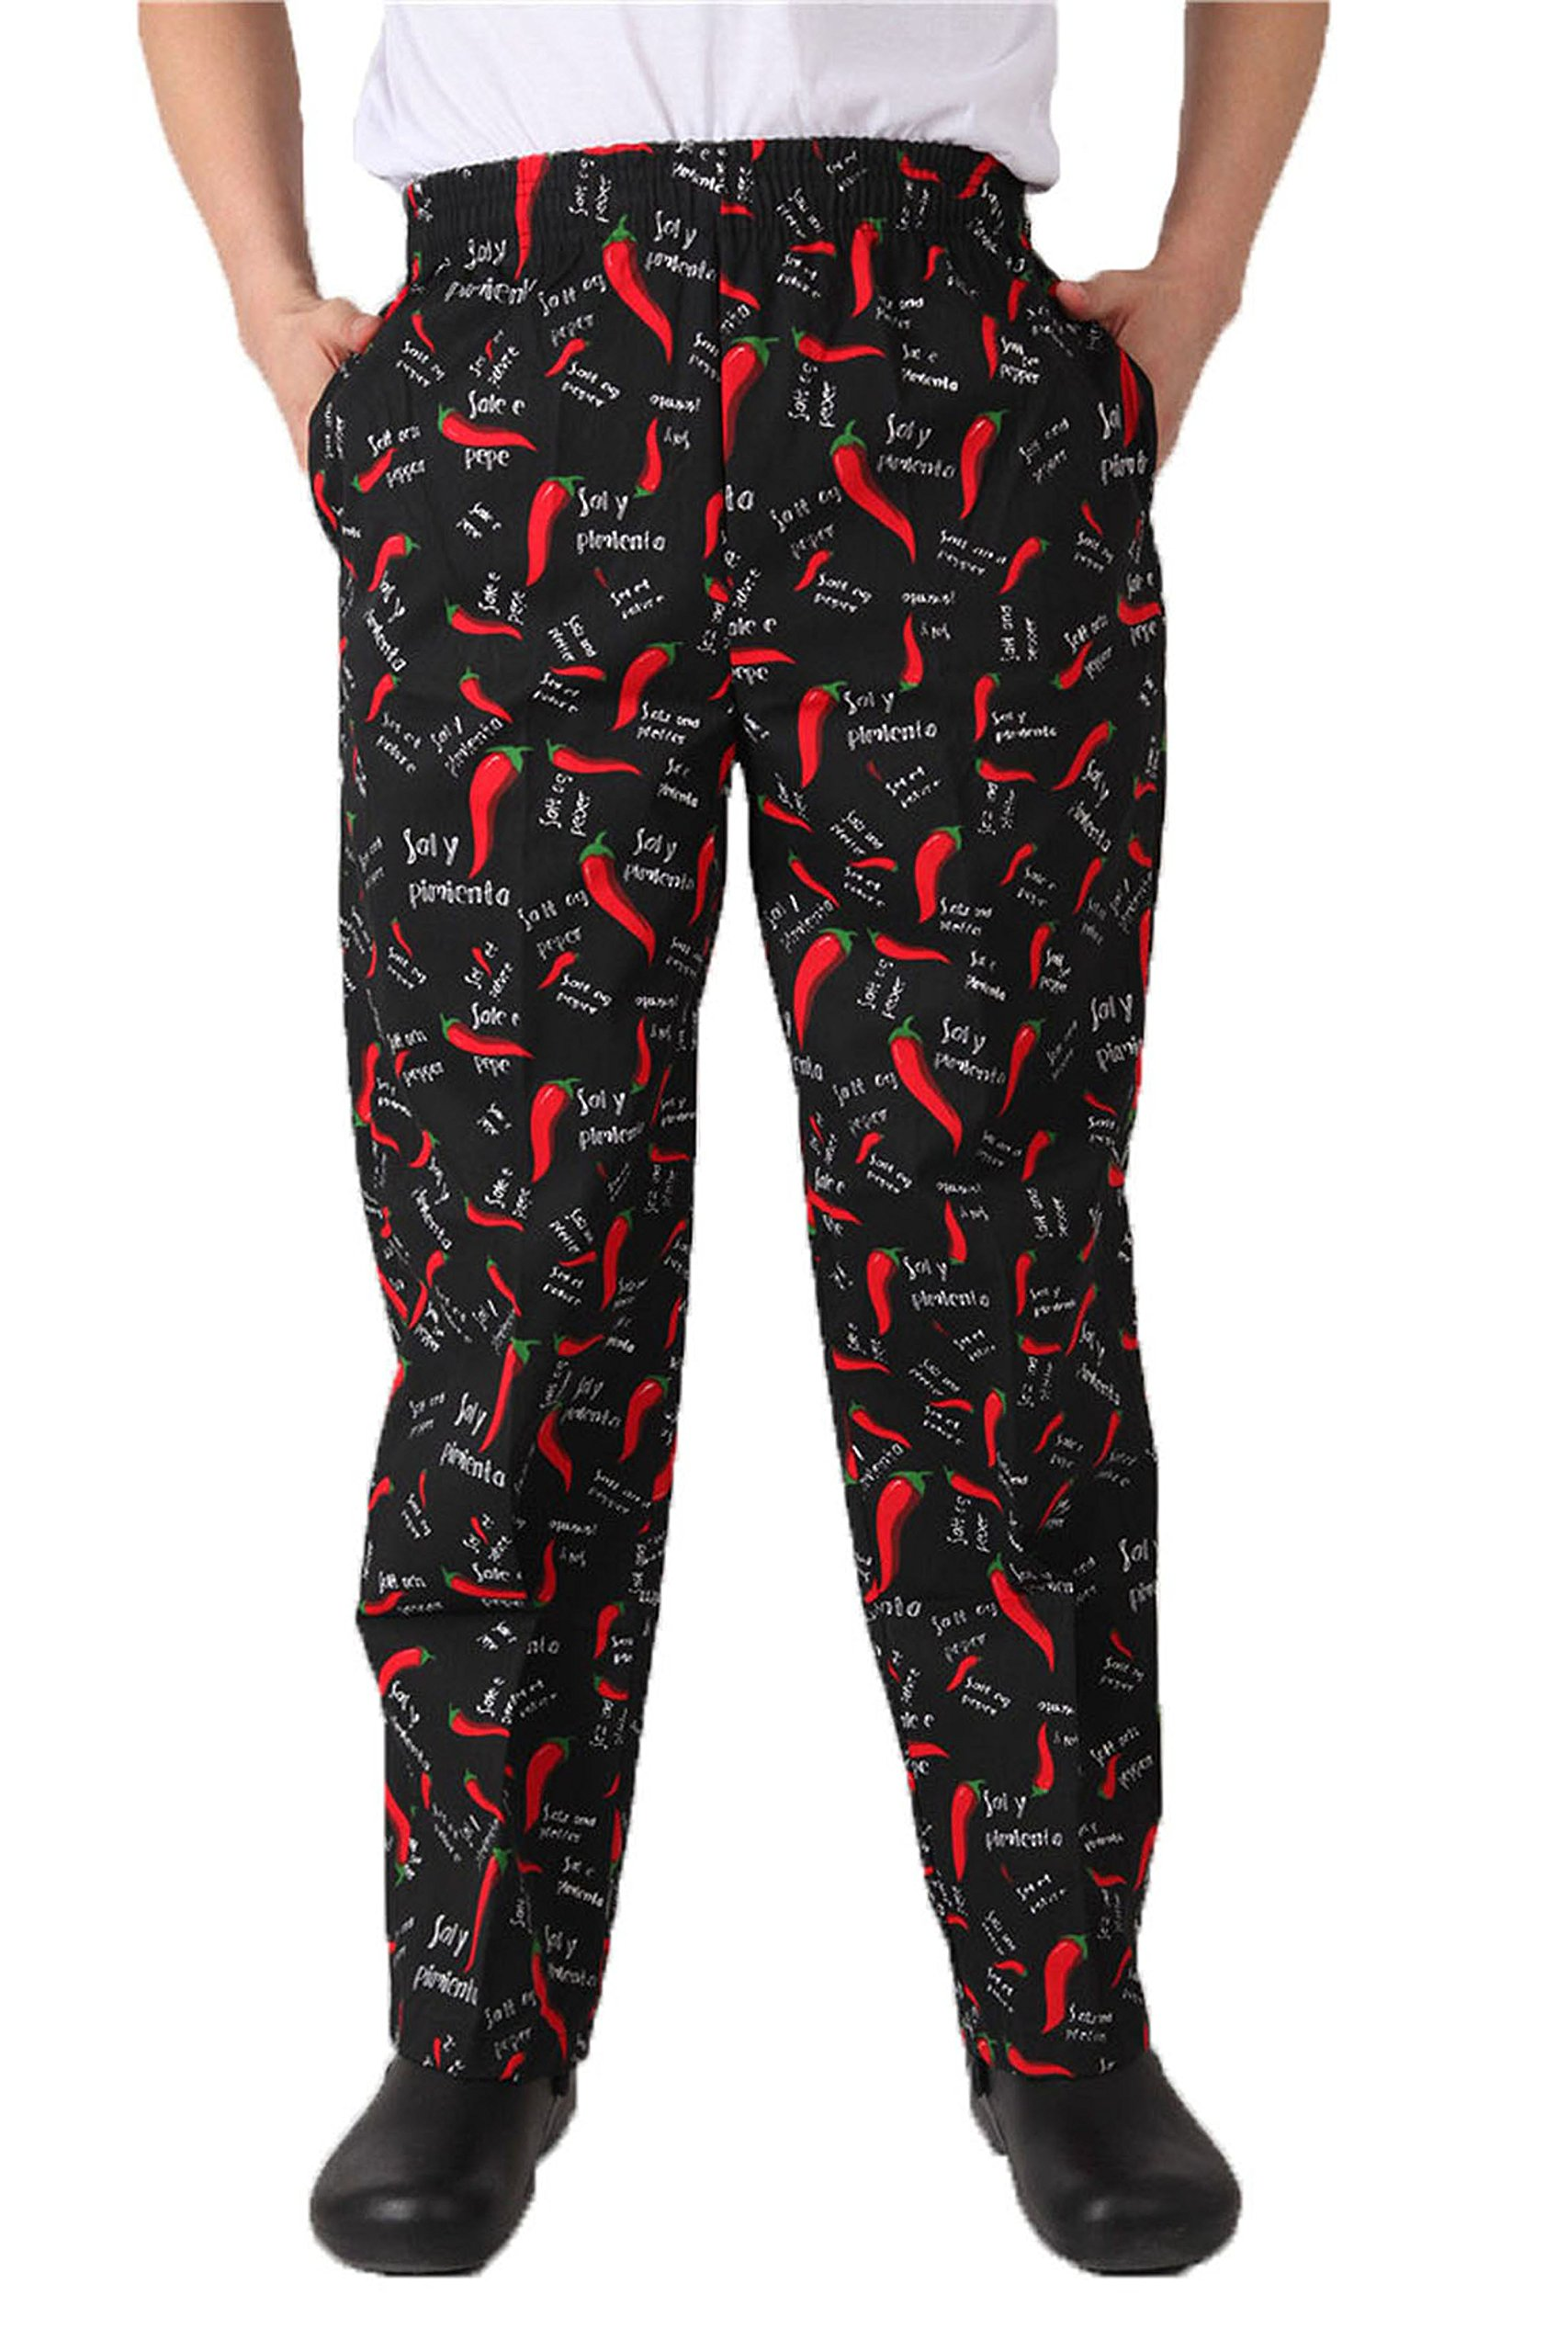 S.S Men Elastic Print Cotton Pepper Chef Pants (Large, Pepper Print)